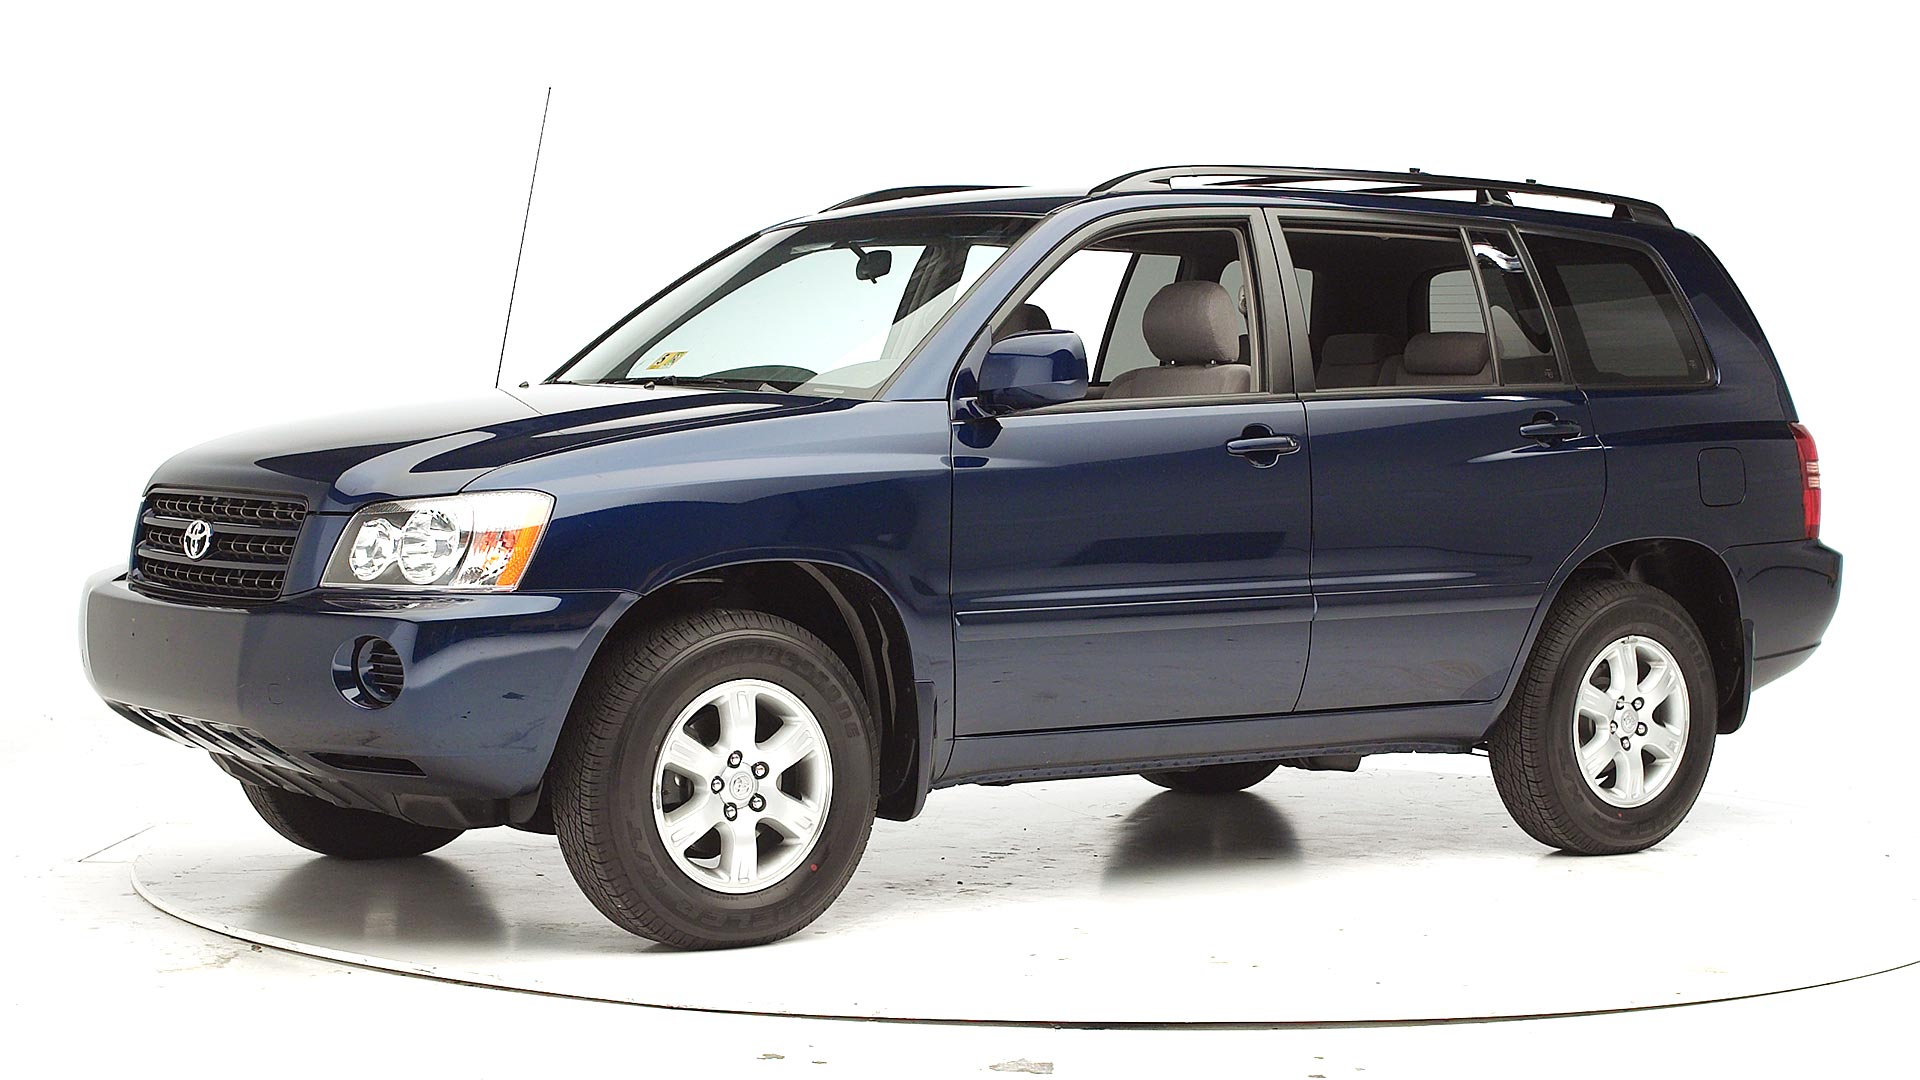 2005 Toyota Highlander 4-door SUV